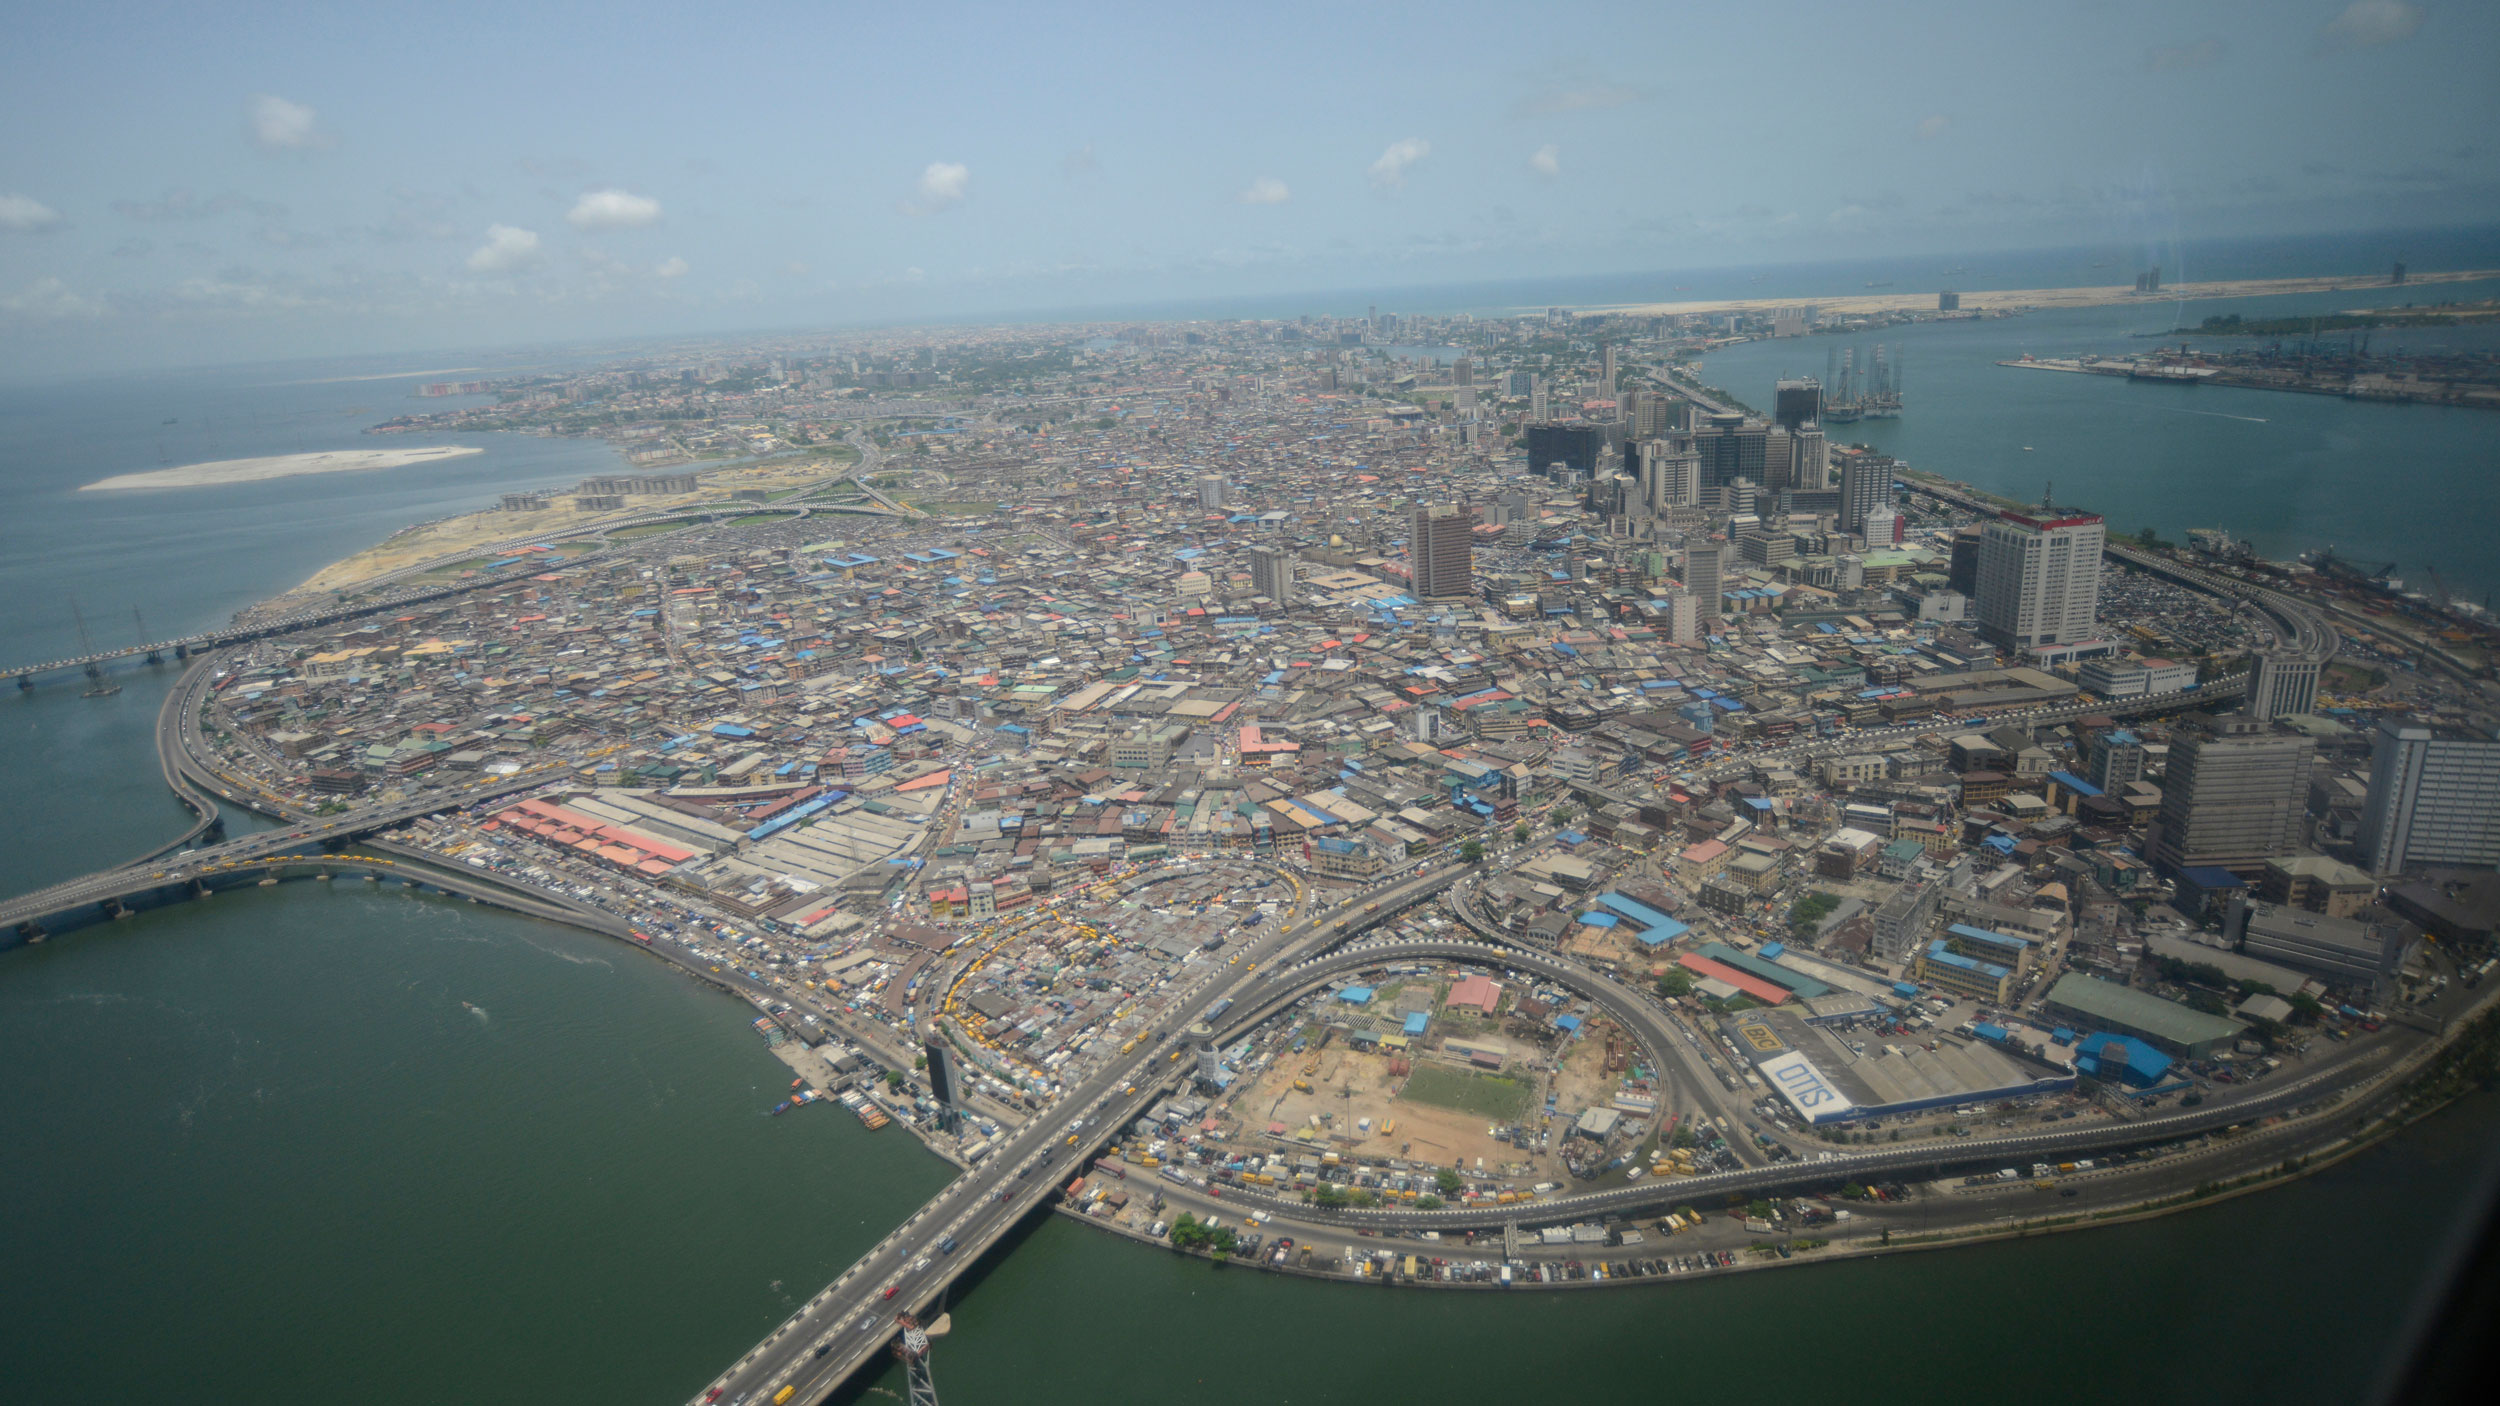 Africa's most populous city may soon be unlivable, experts warn